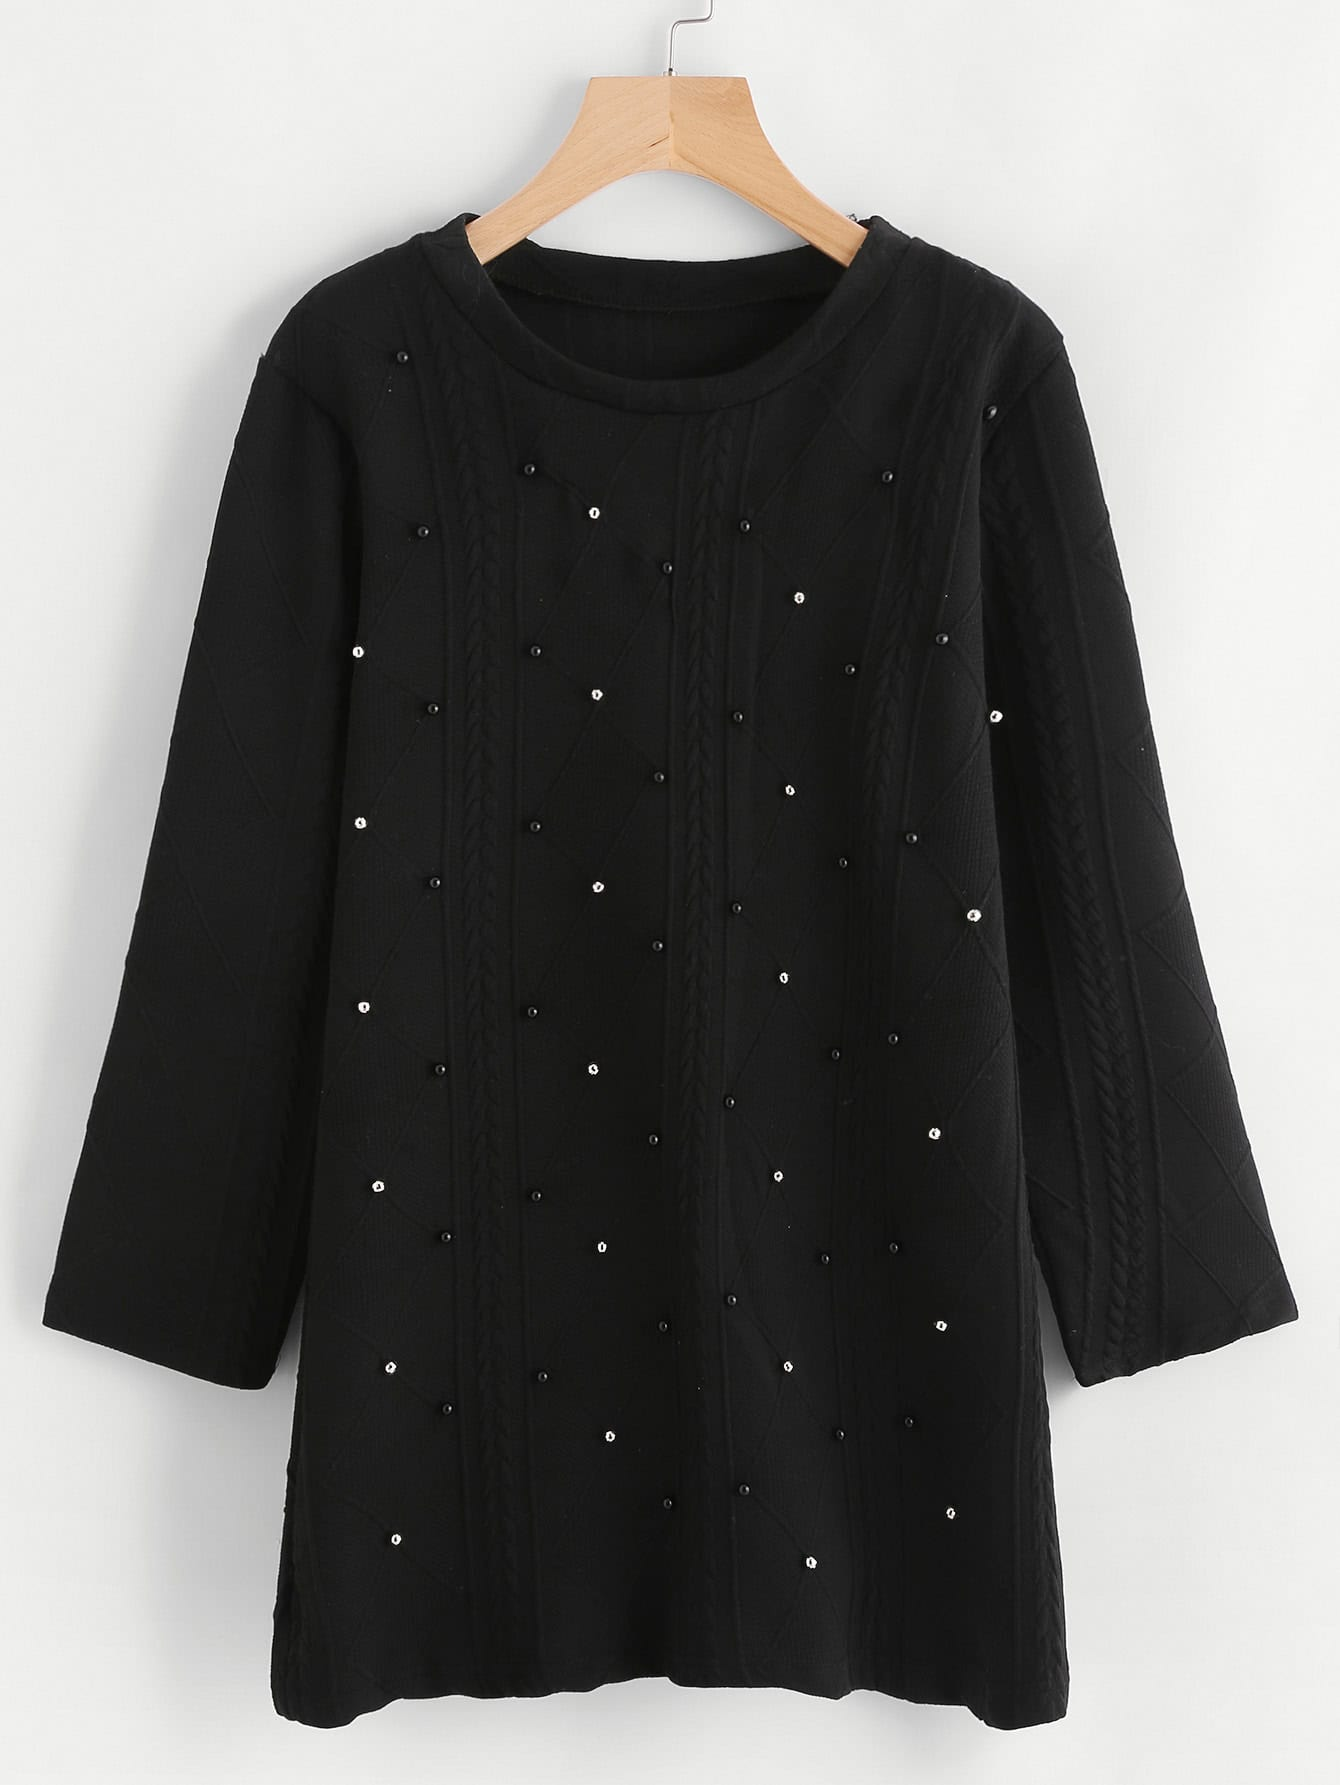 Studded Detail Sweater капри lavelle капри